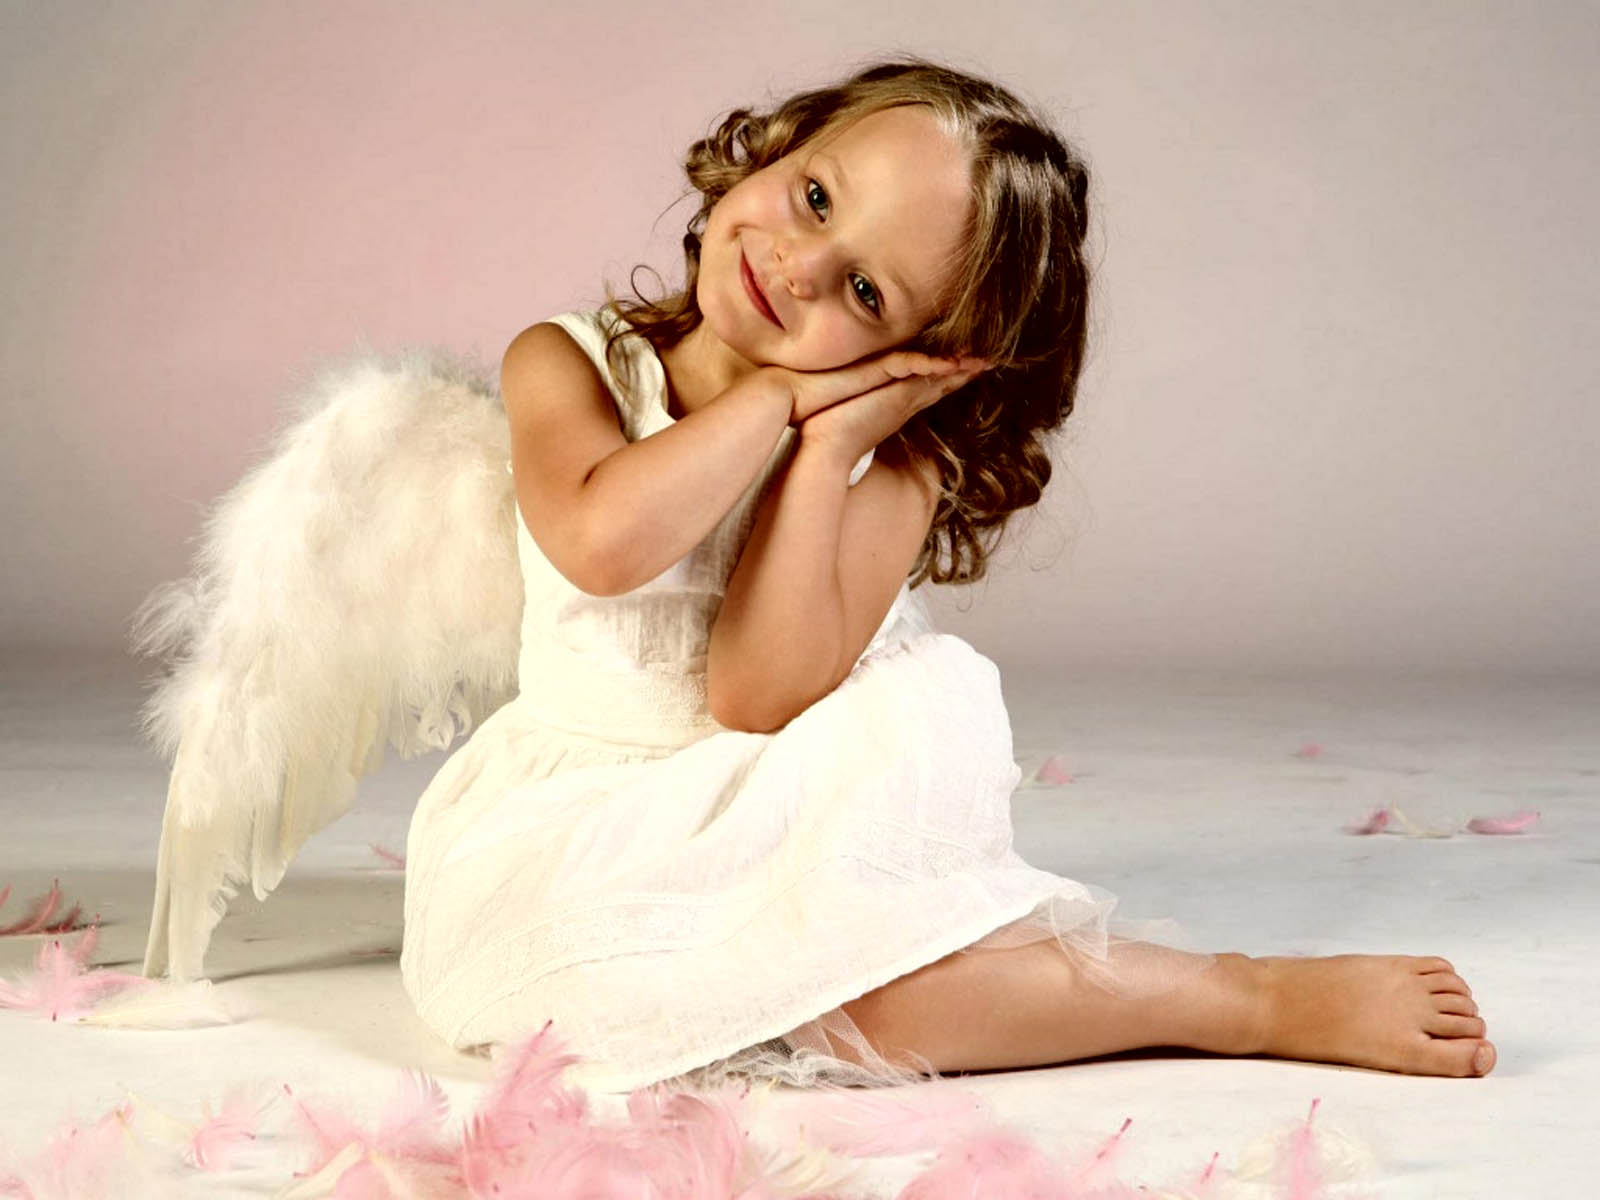 Tag Angel Babies Wallpapers Backgrounds Photos Images and Pictures 1600x1200